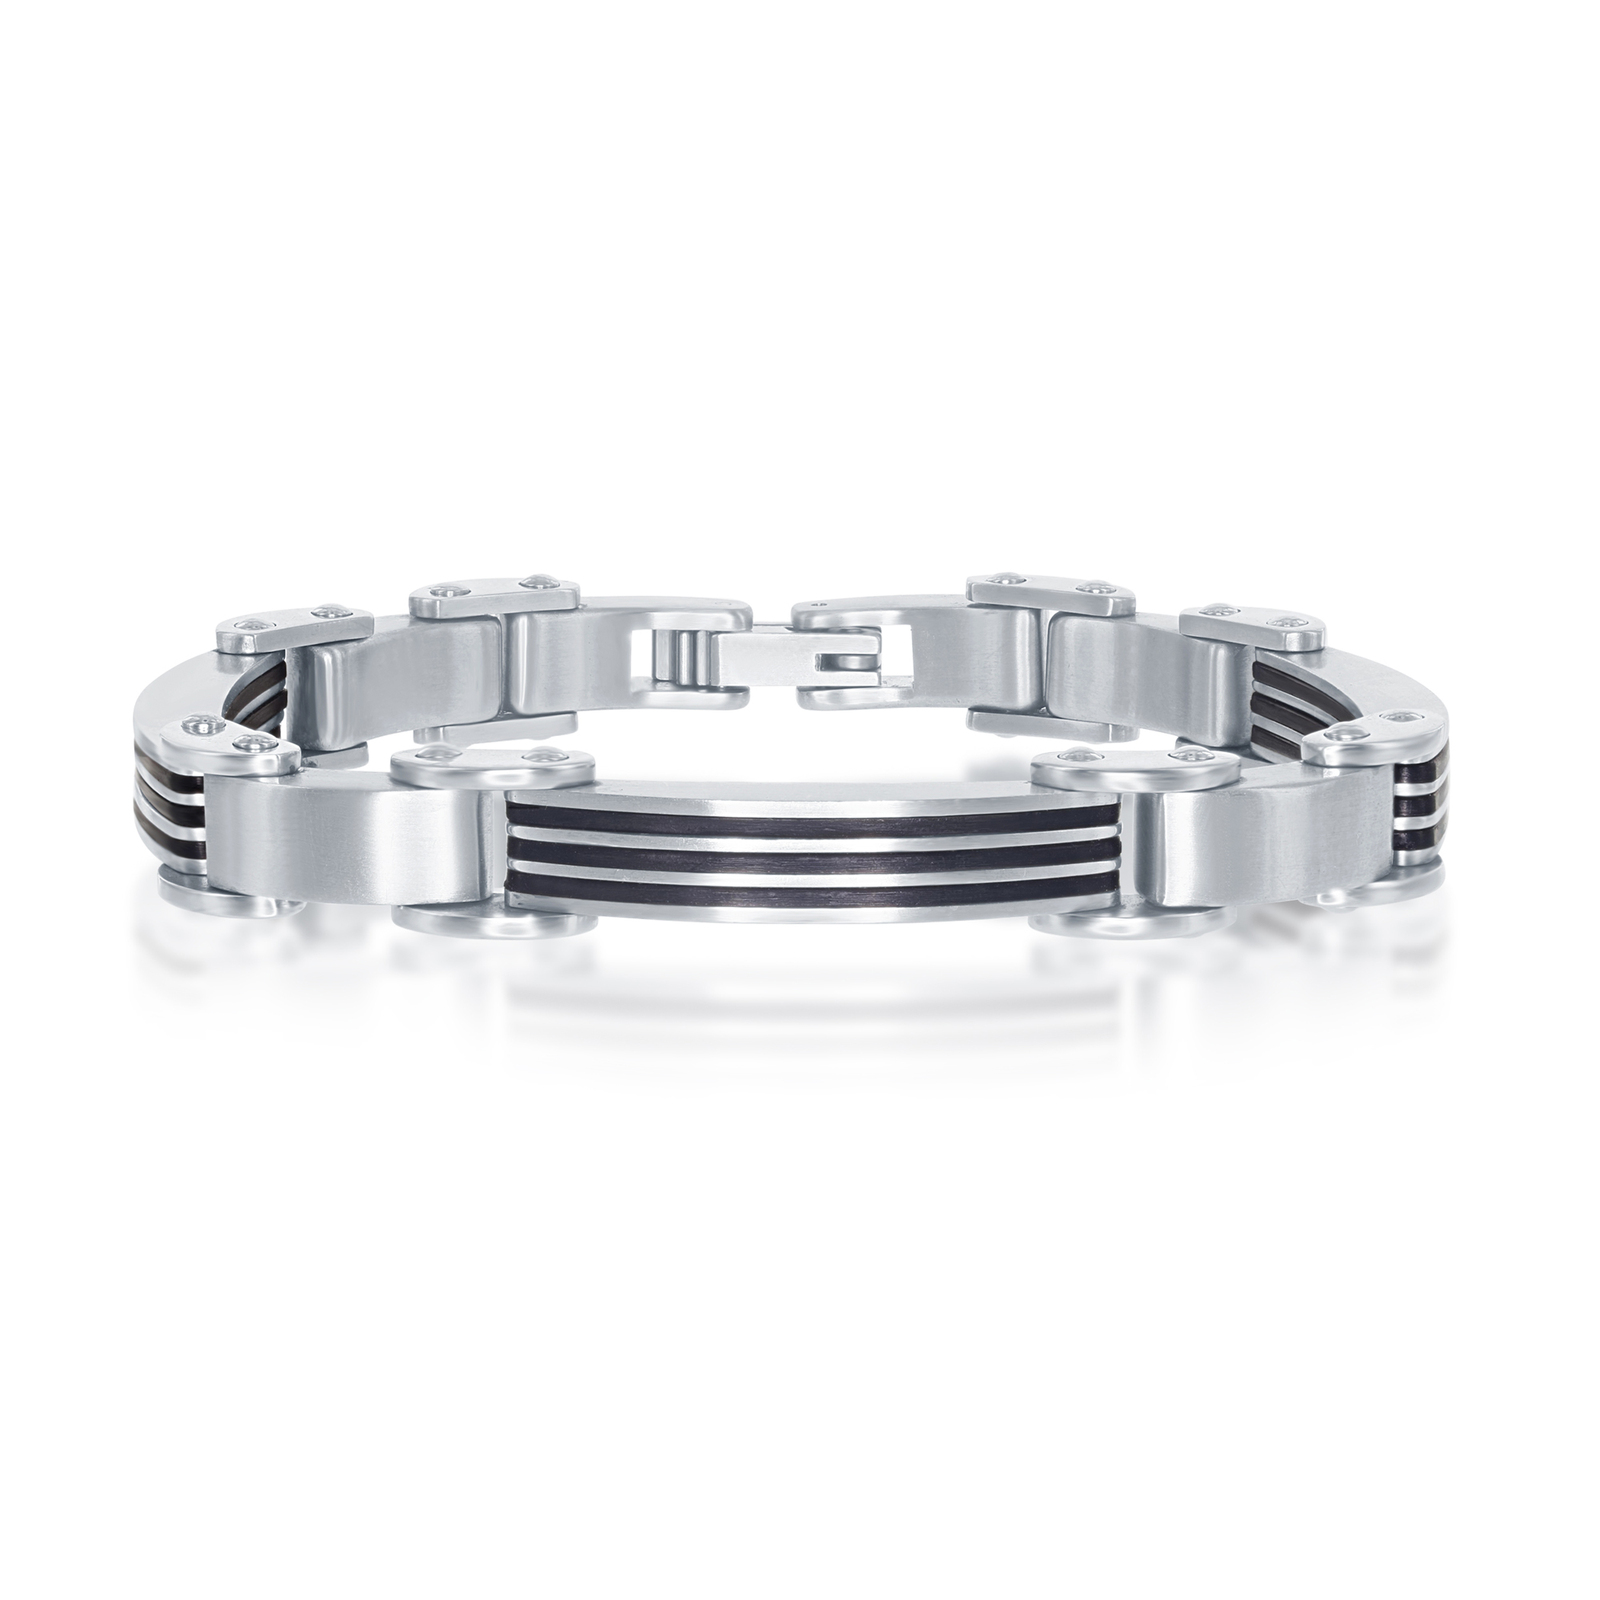 Primary image for  Unisex Stainless Steel Stainless Steel Bracelet